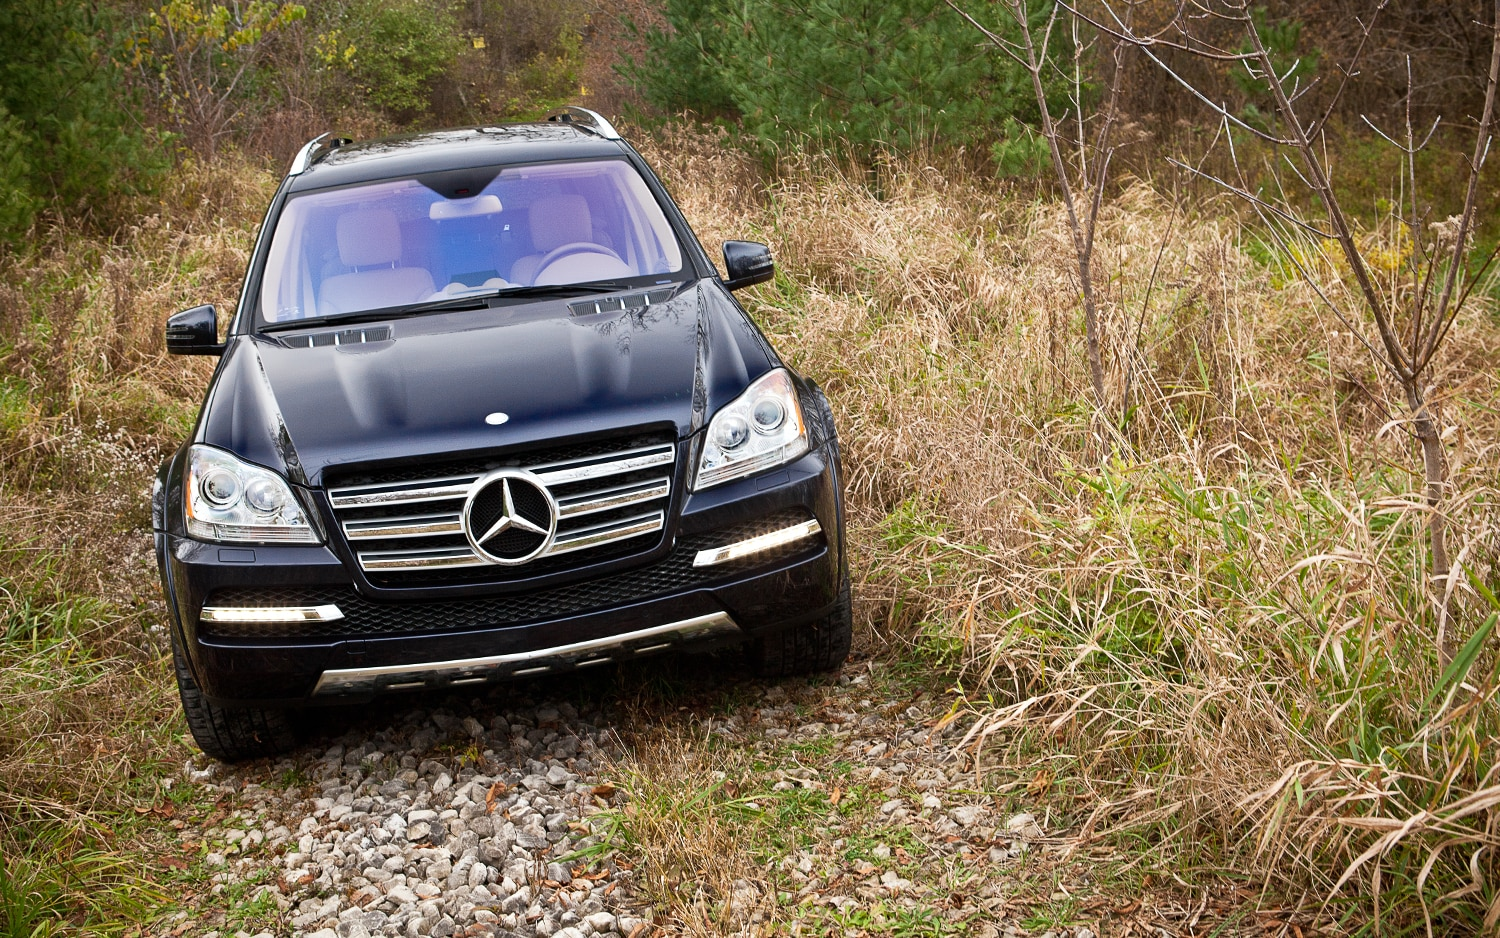 2012 Mercedes Benz GL550 4Matic Front View1